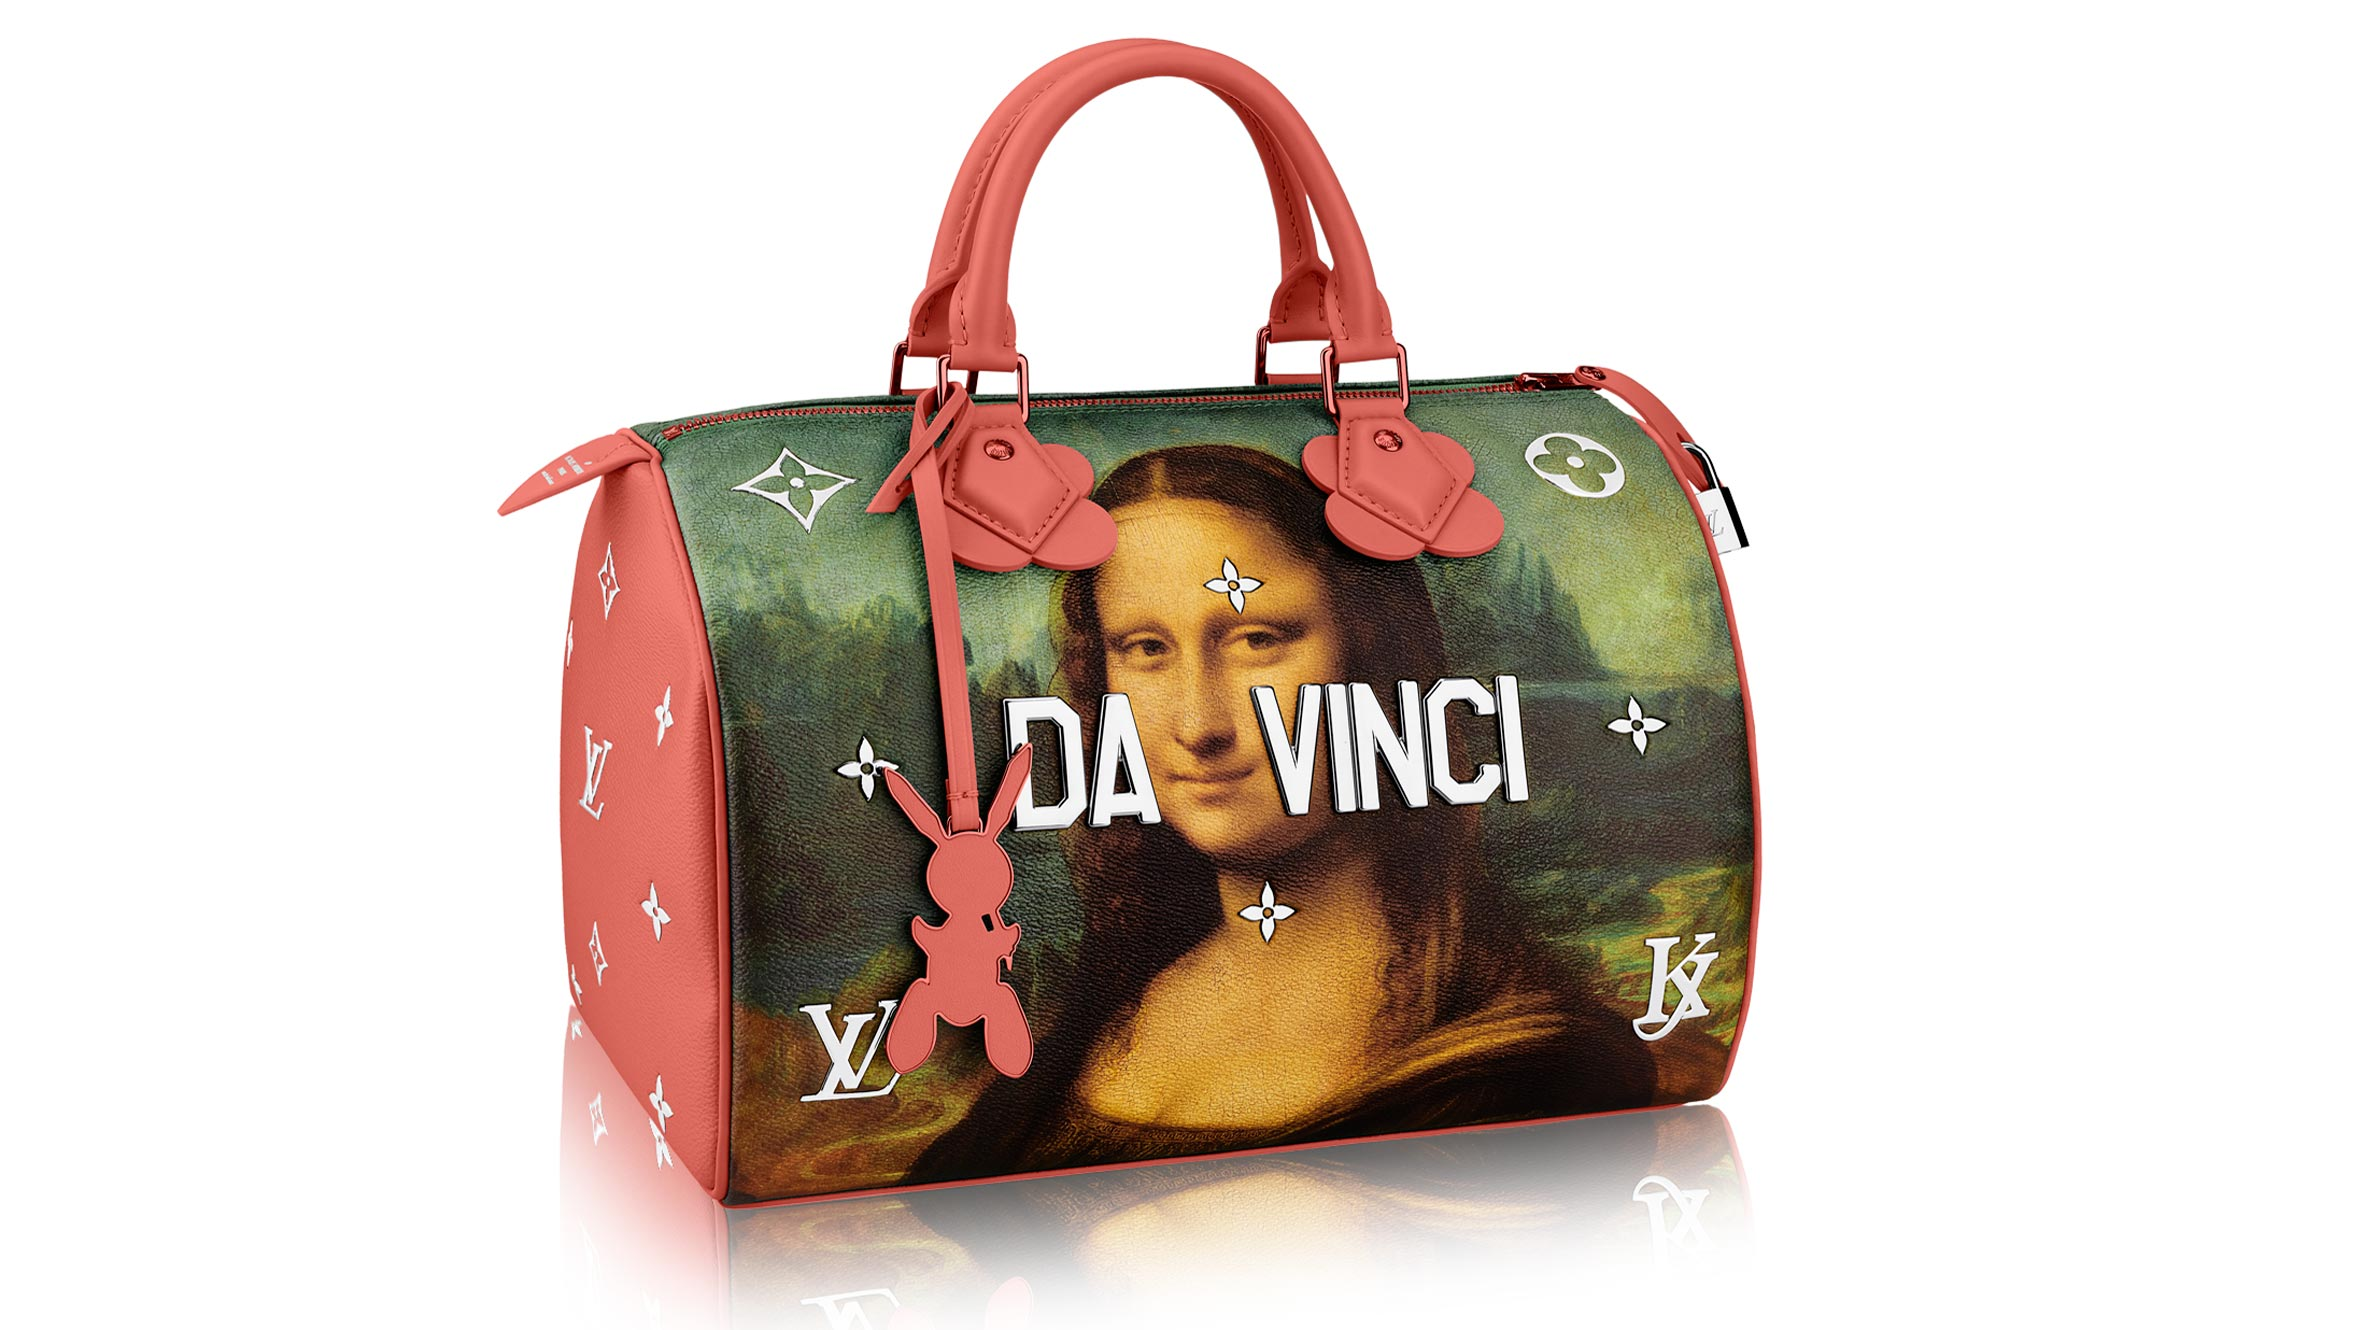 Louis Vuitton ritorna a collaborare con l'arte